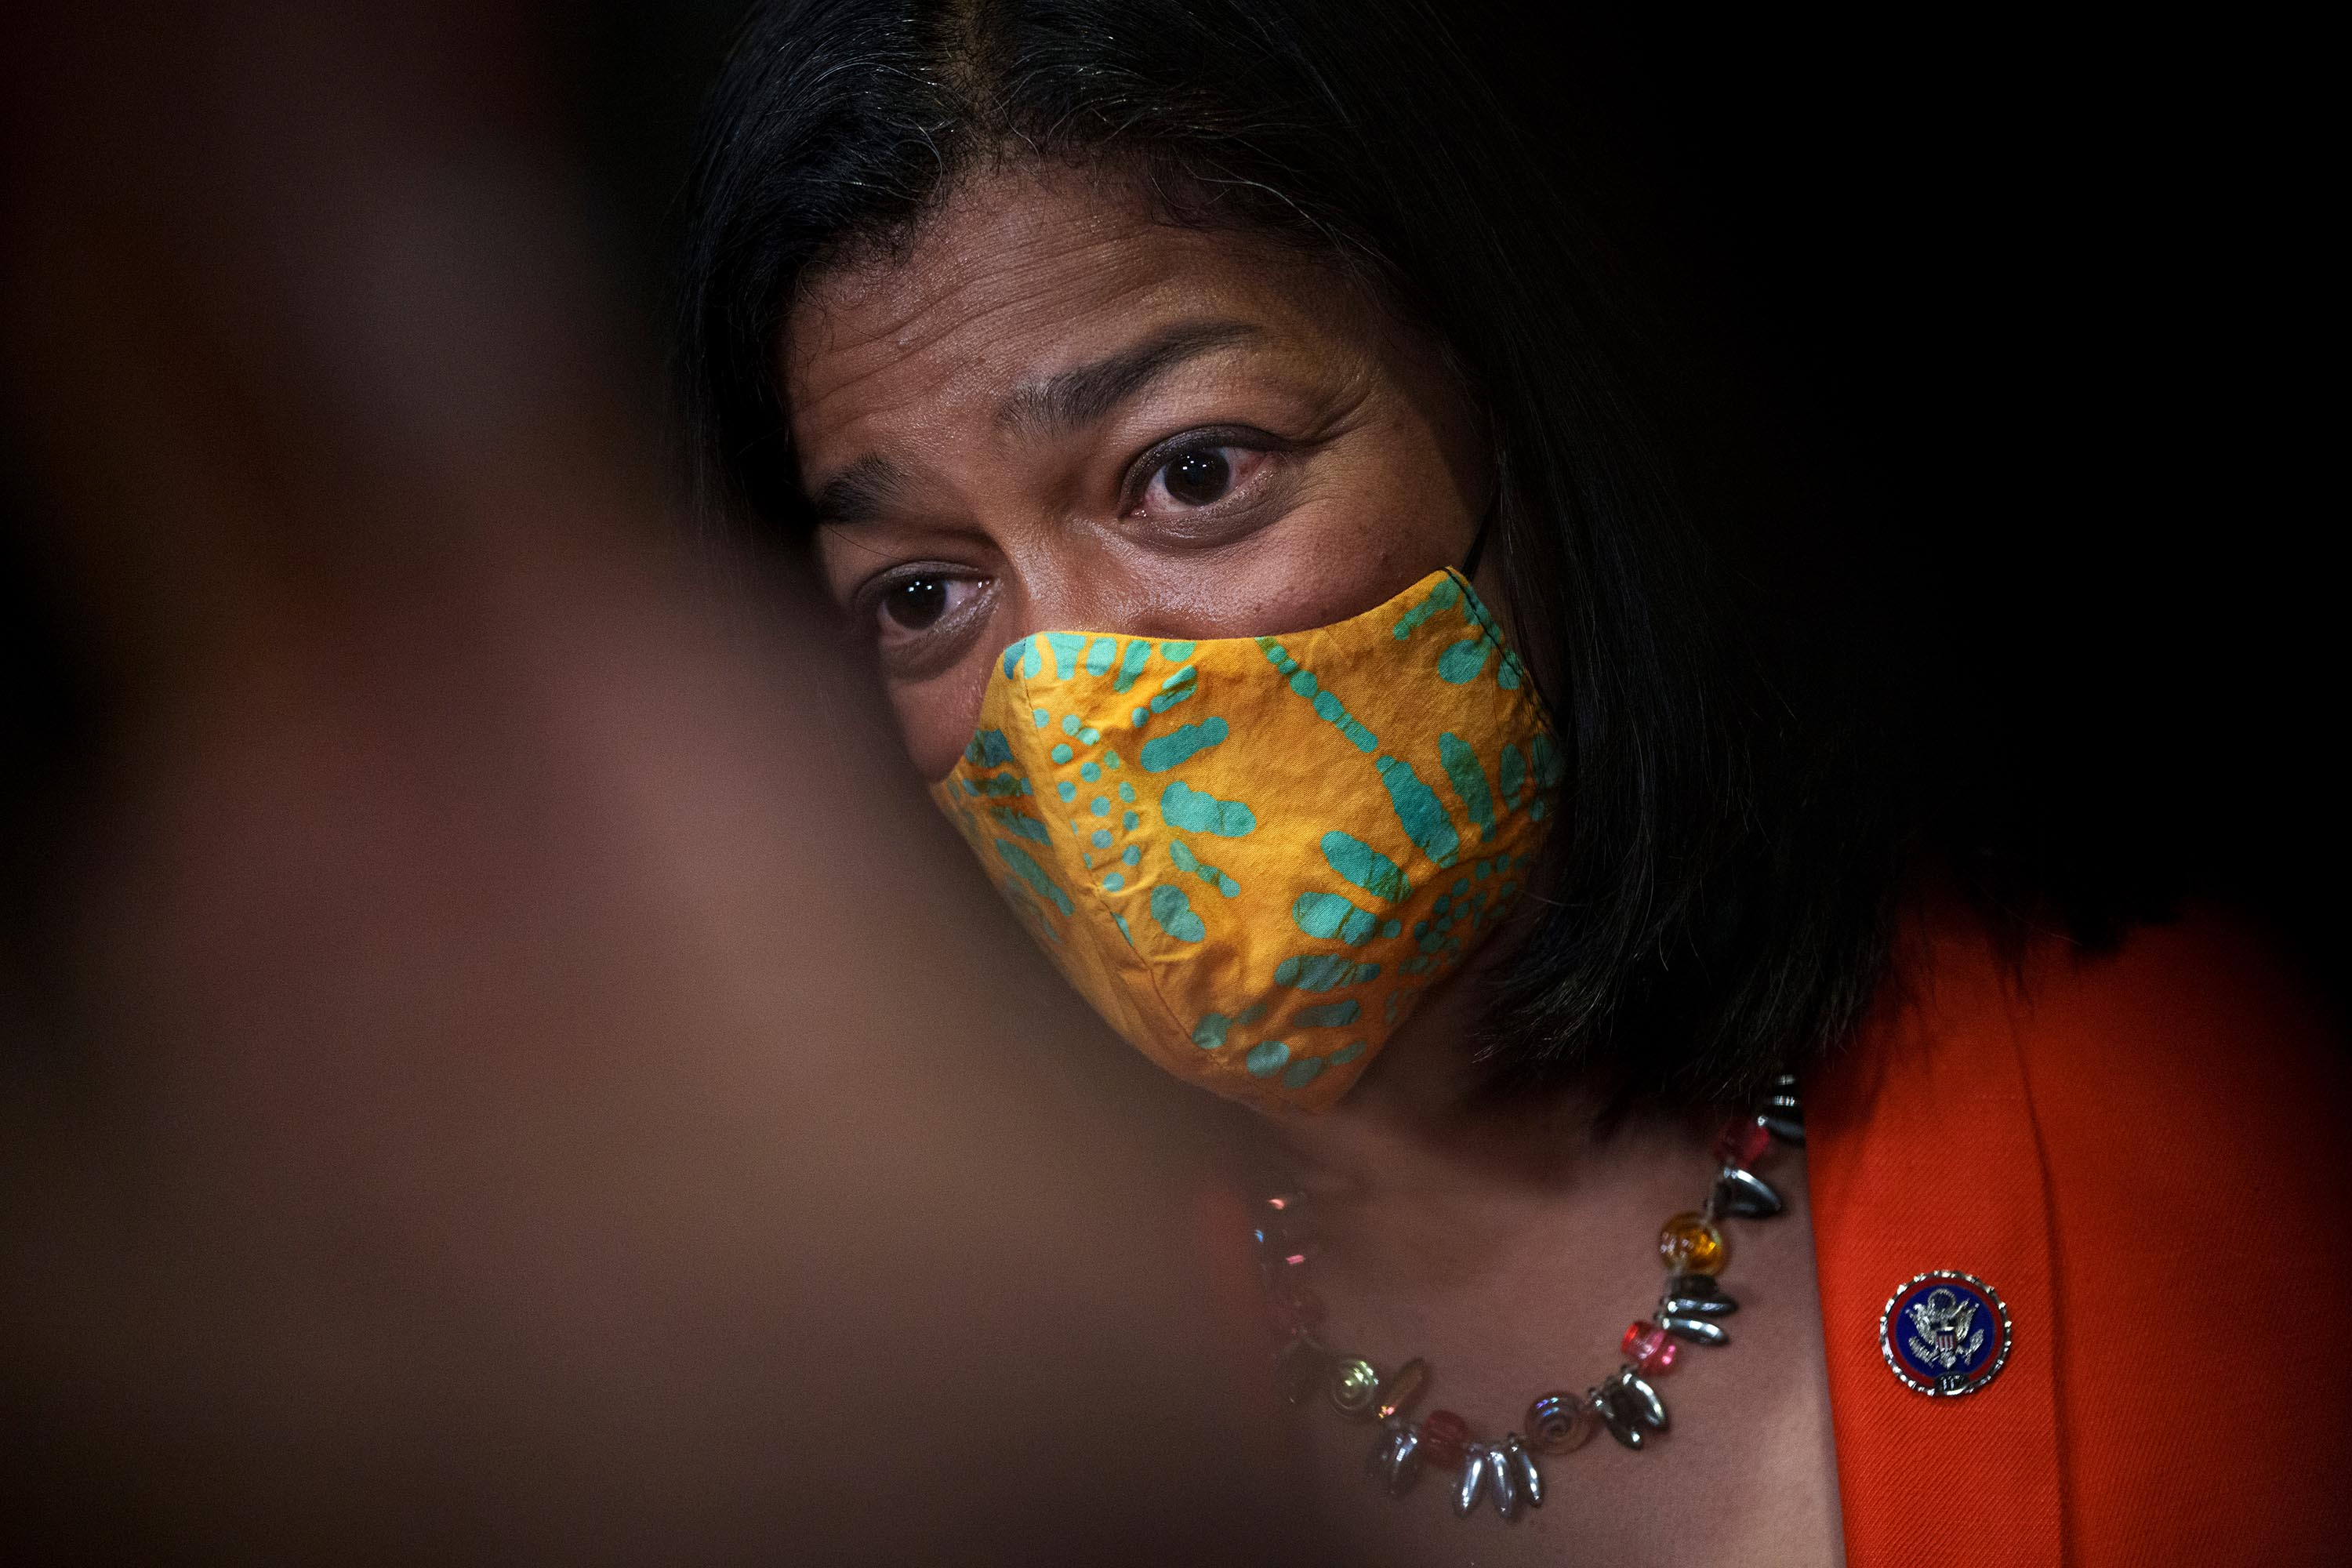 Chair of the Congressional Progressive Caucus Rep. Pramila Jayapal (D-WA) speaks to reporters after a closed-door meeting with fellow Progressive Democrats at the U.S. Capitol October 1, 2021 in Washington, DC.